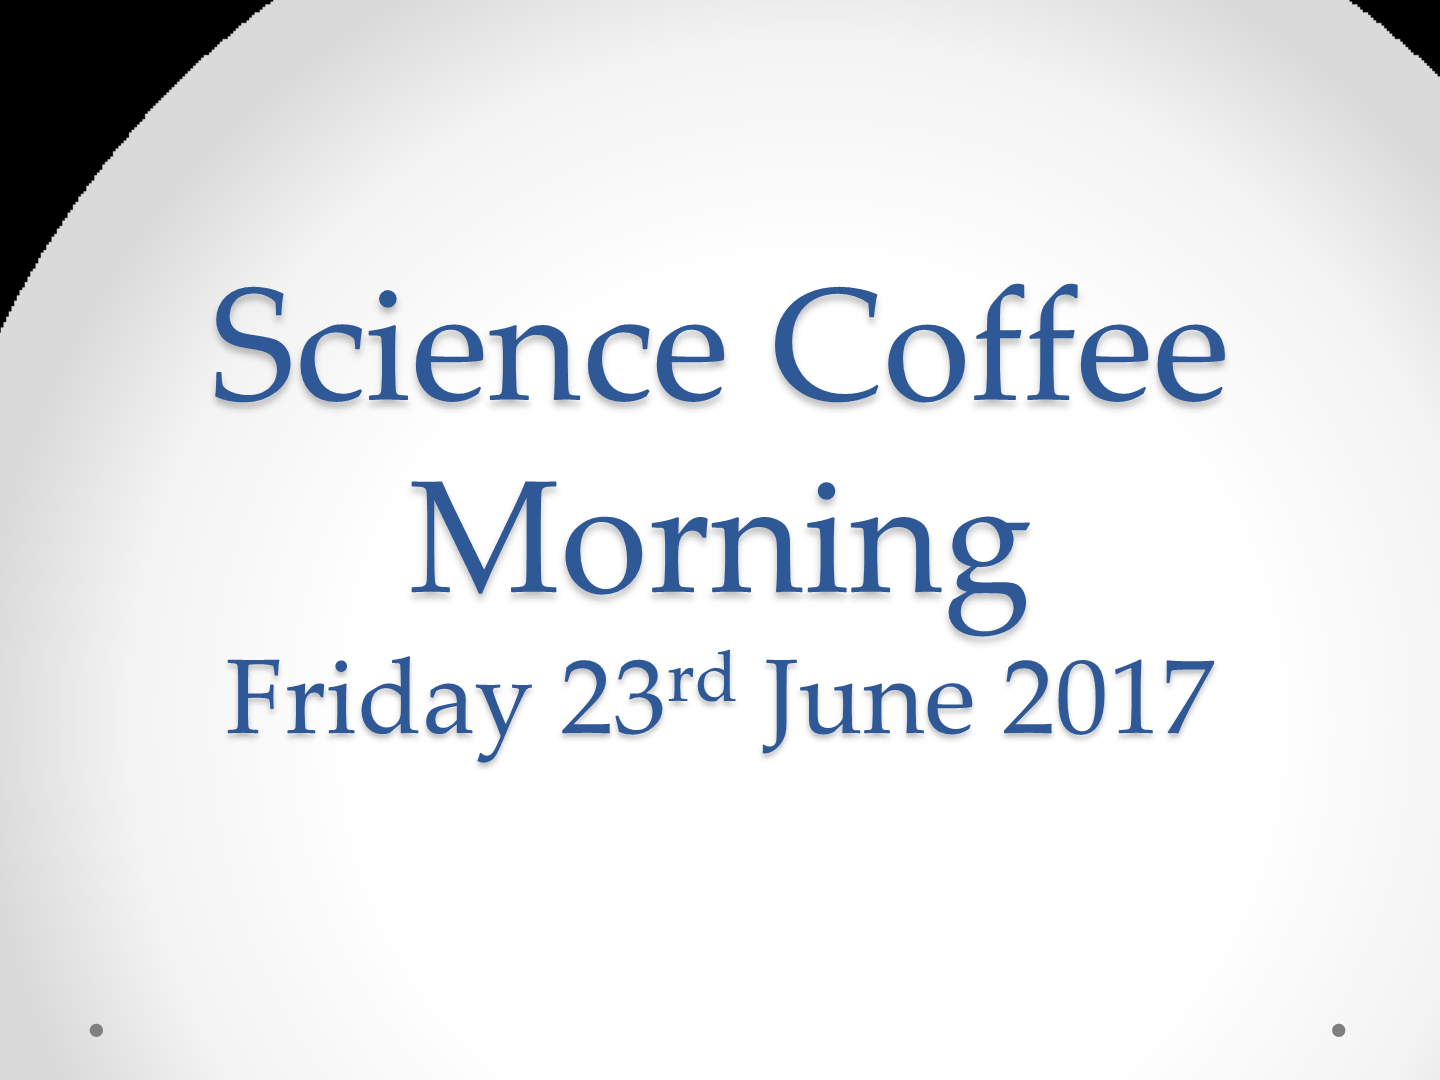 Science Coffee Morning